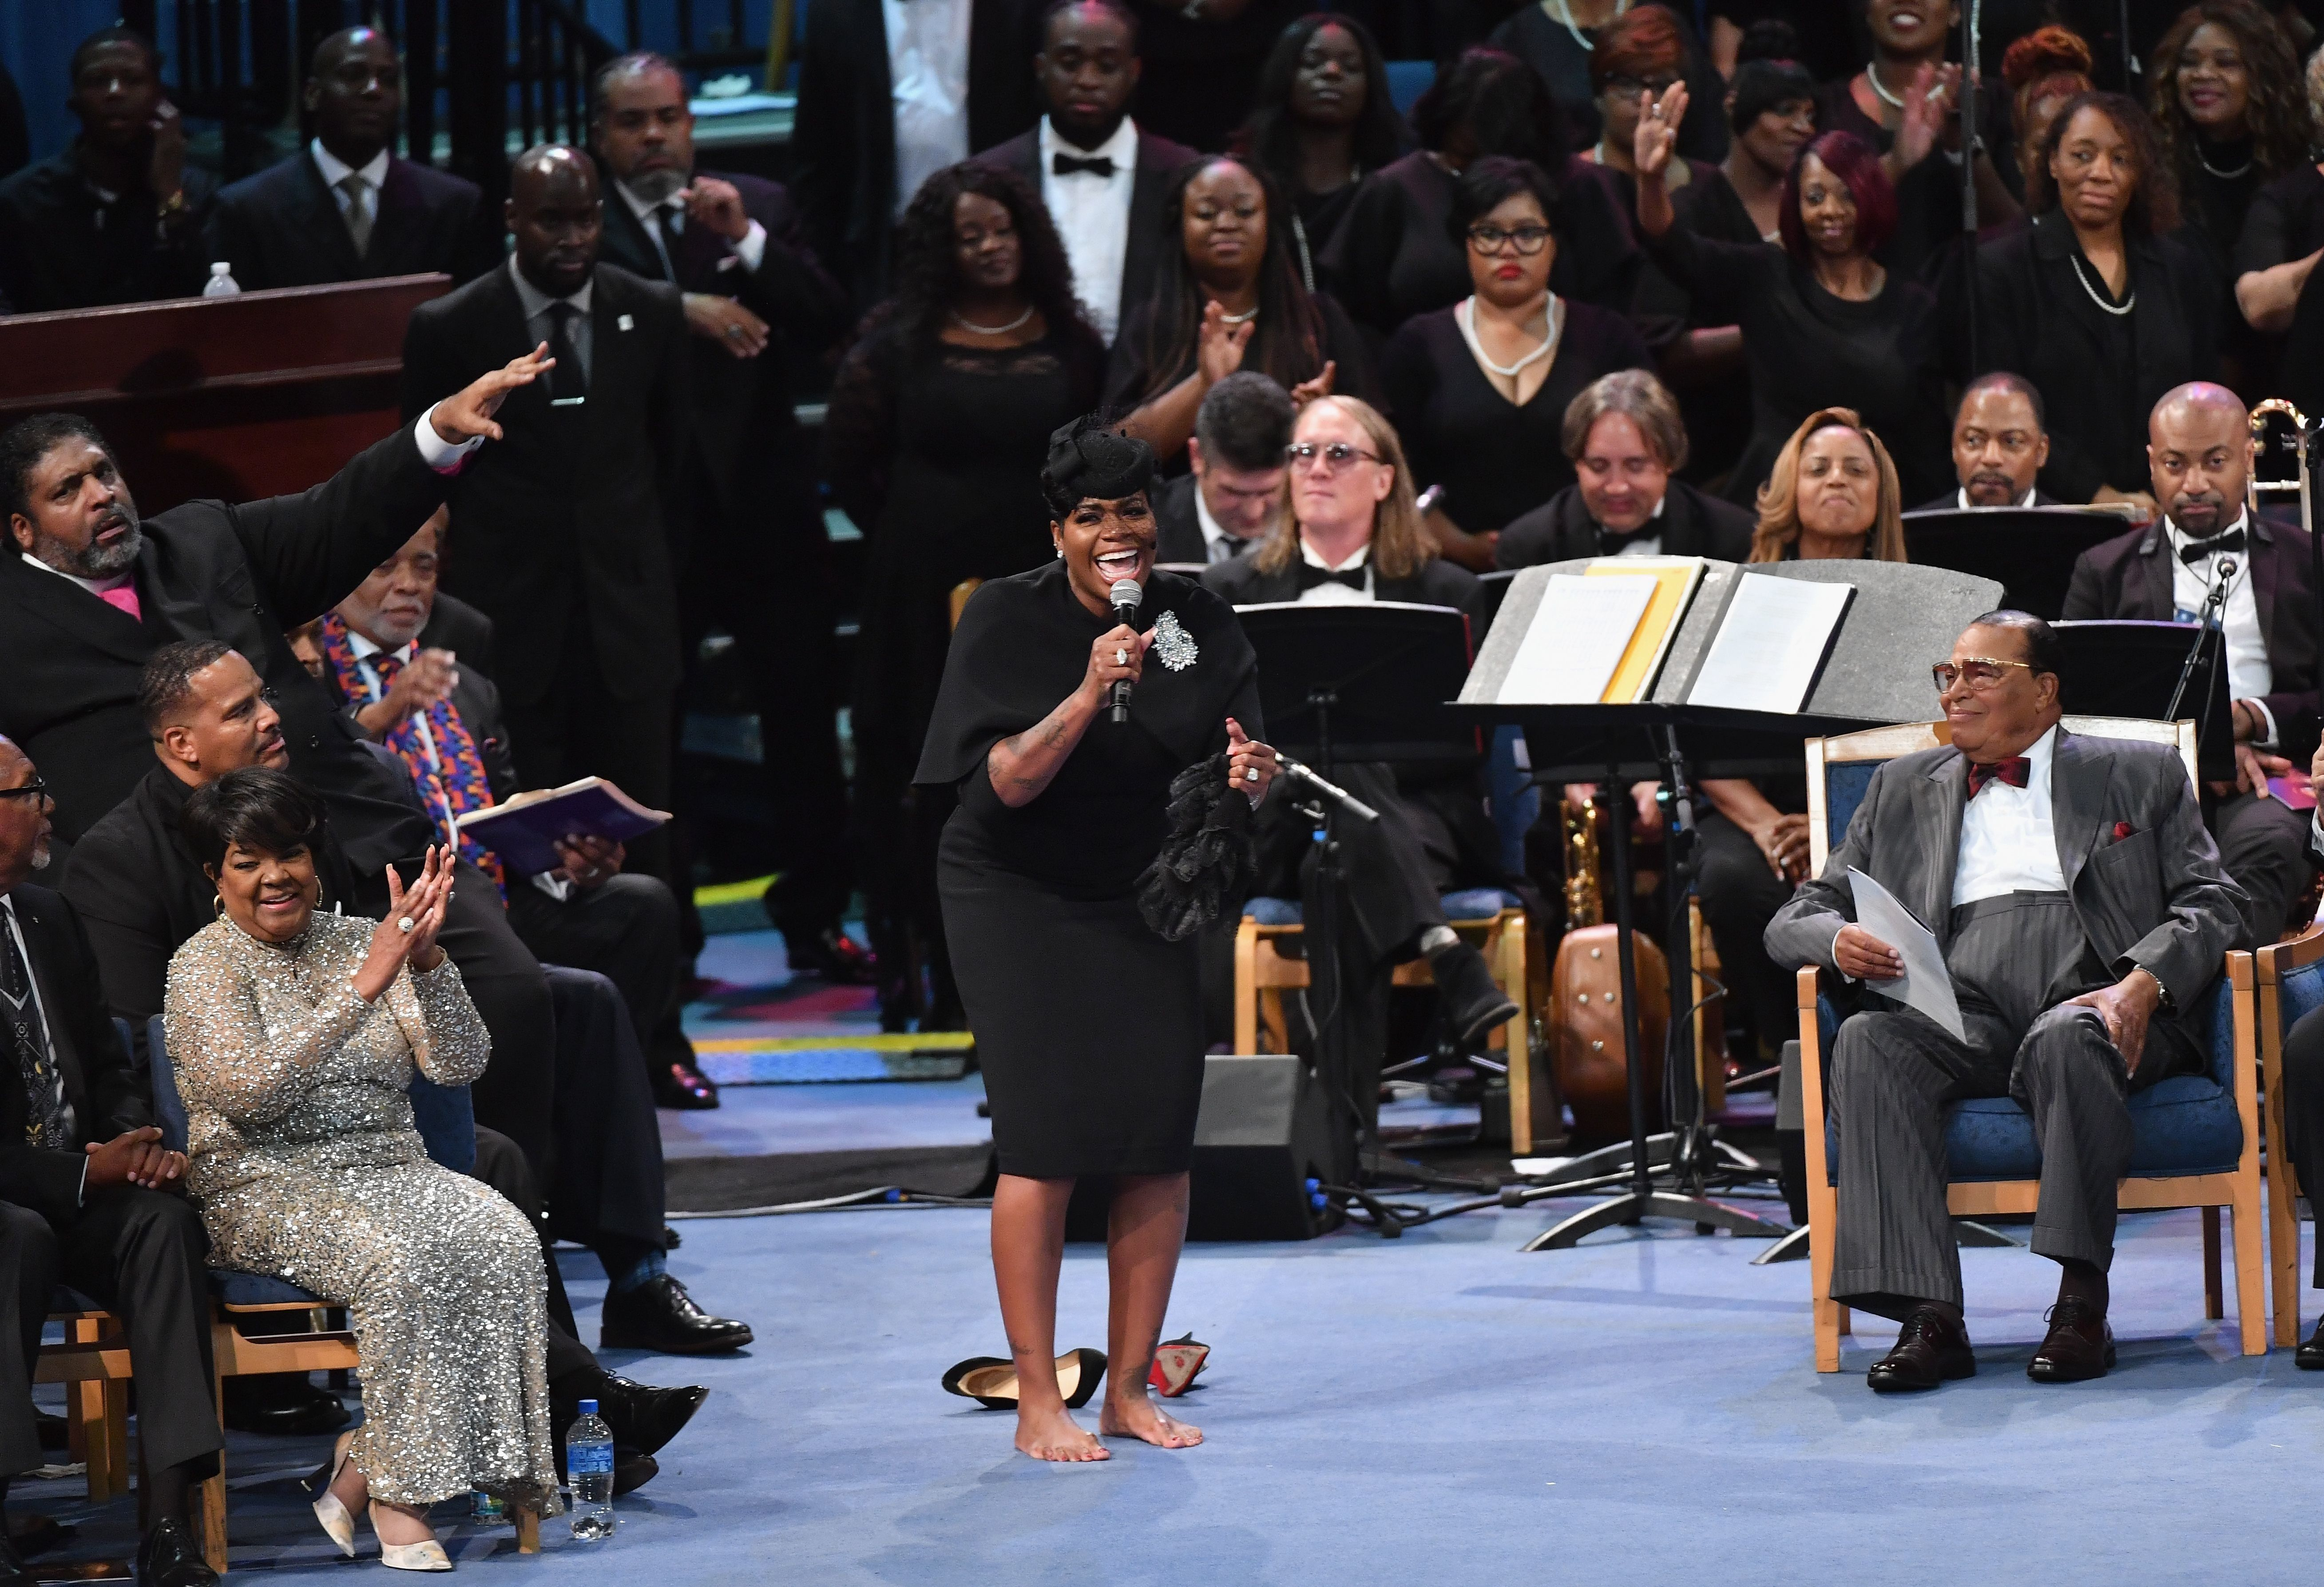 A Barefoot Fantasia Barrino Sings Soulful Tribute At Aretha Franklin's Funeral